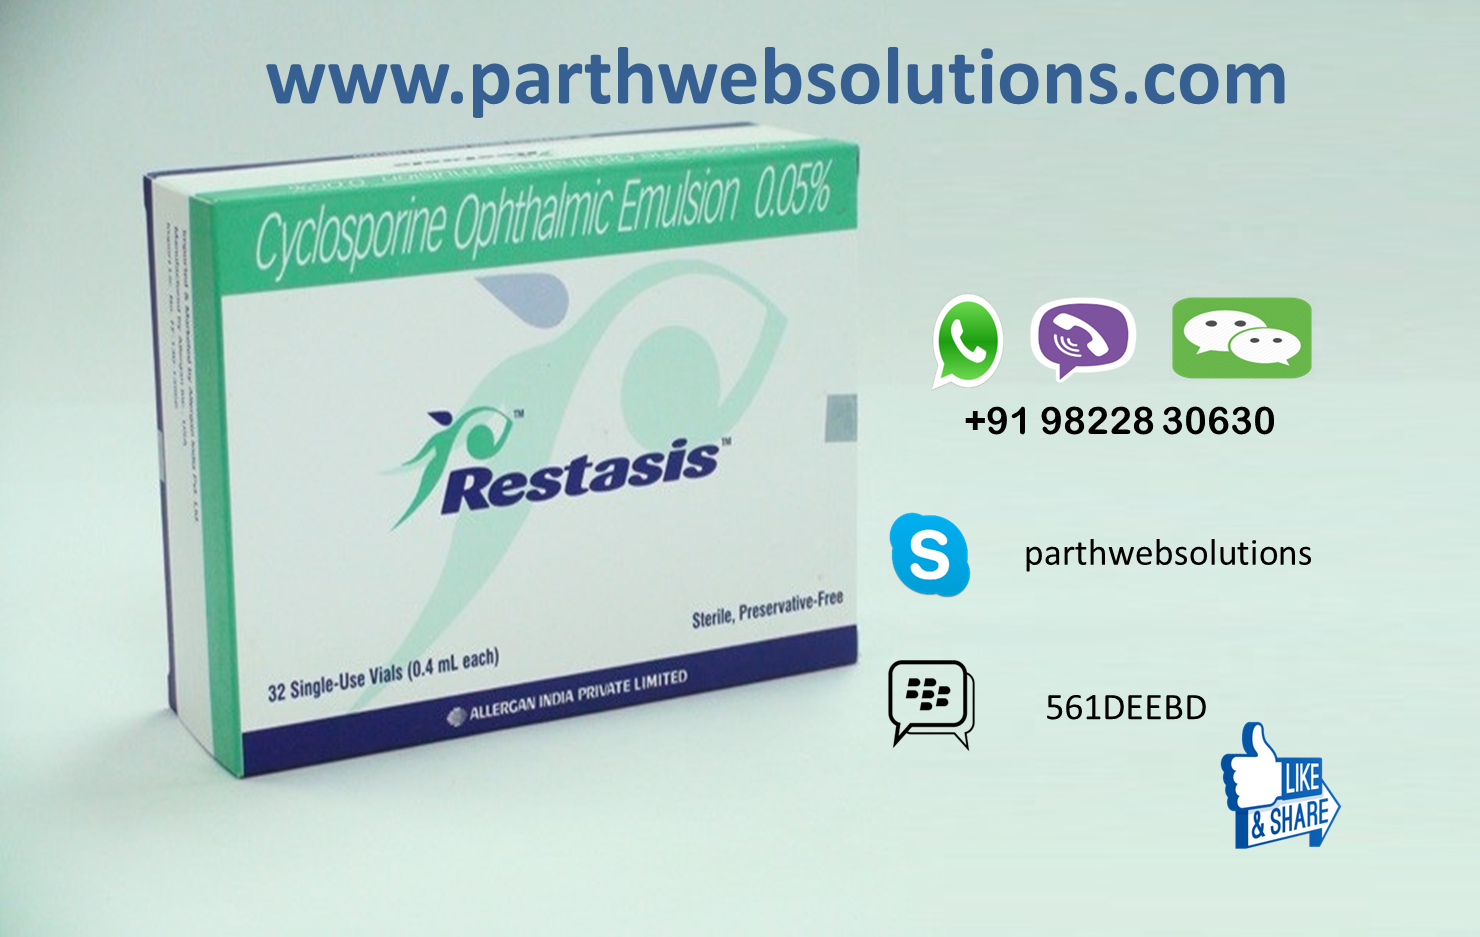 Restasis (Cyclosporine Opthalmic Emulsion Eye Drops)